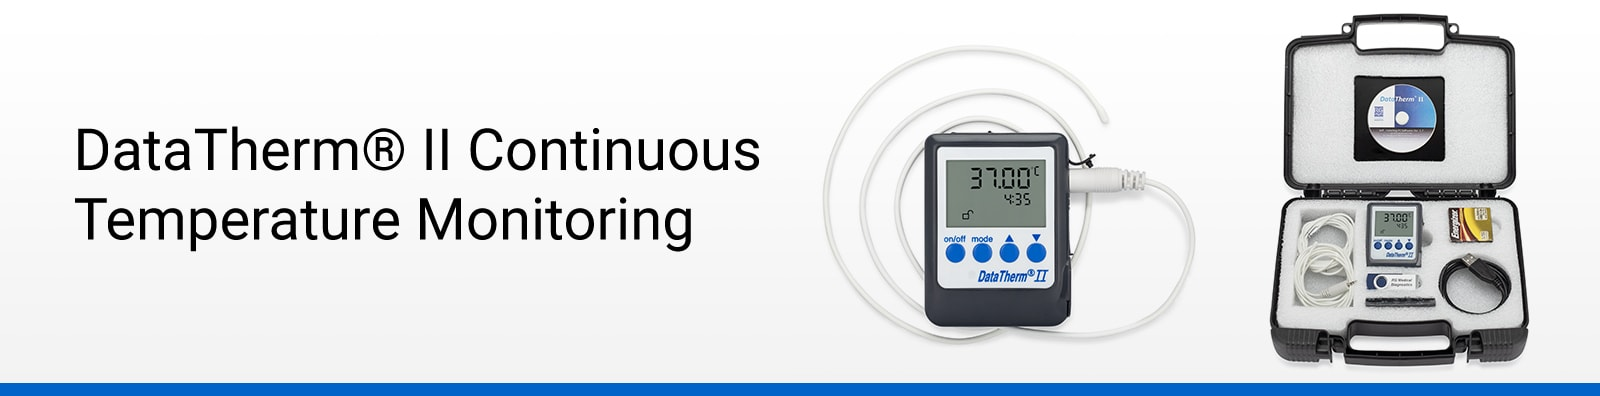 DataTherm® II Continuous Temperature Monitoring - Henry Schein Medical